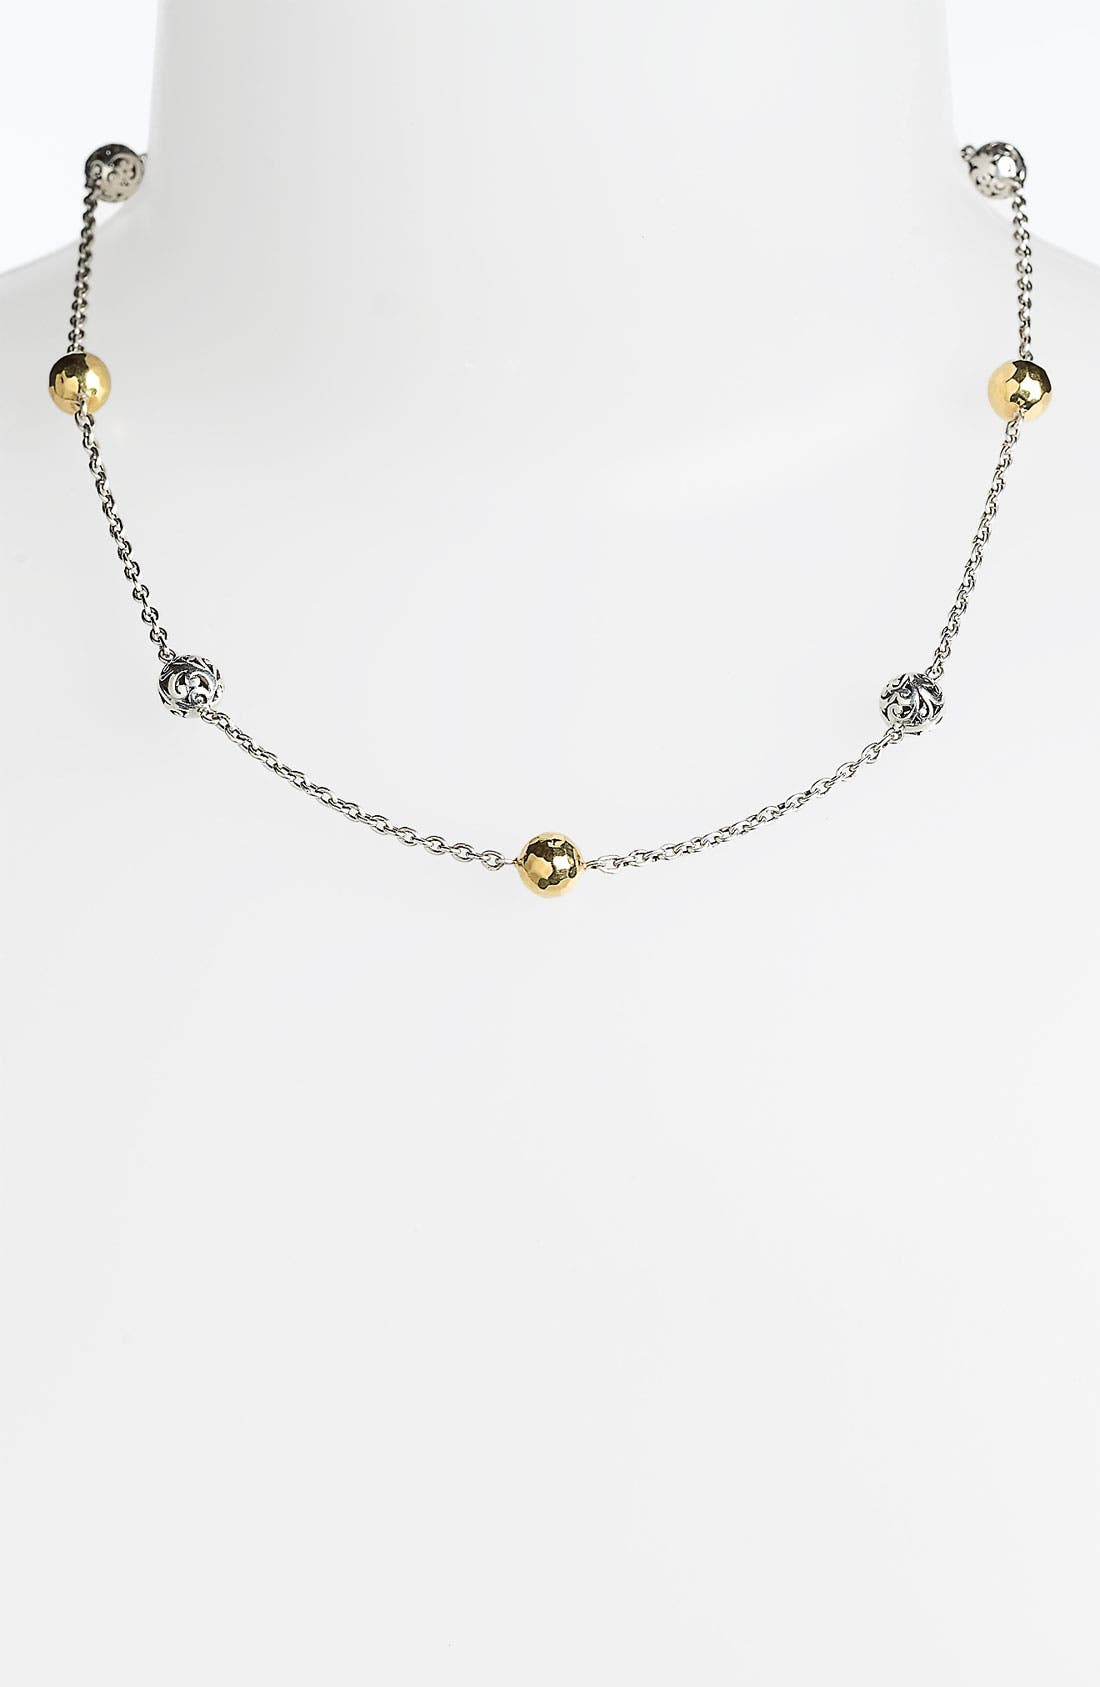 Main Image - Lois Hill 'Marquise' Bead Station Necklace